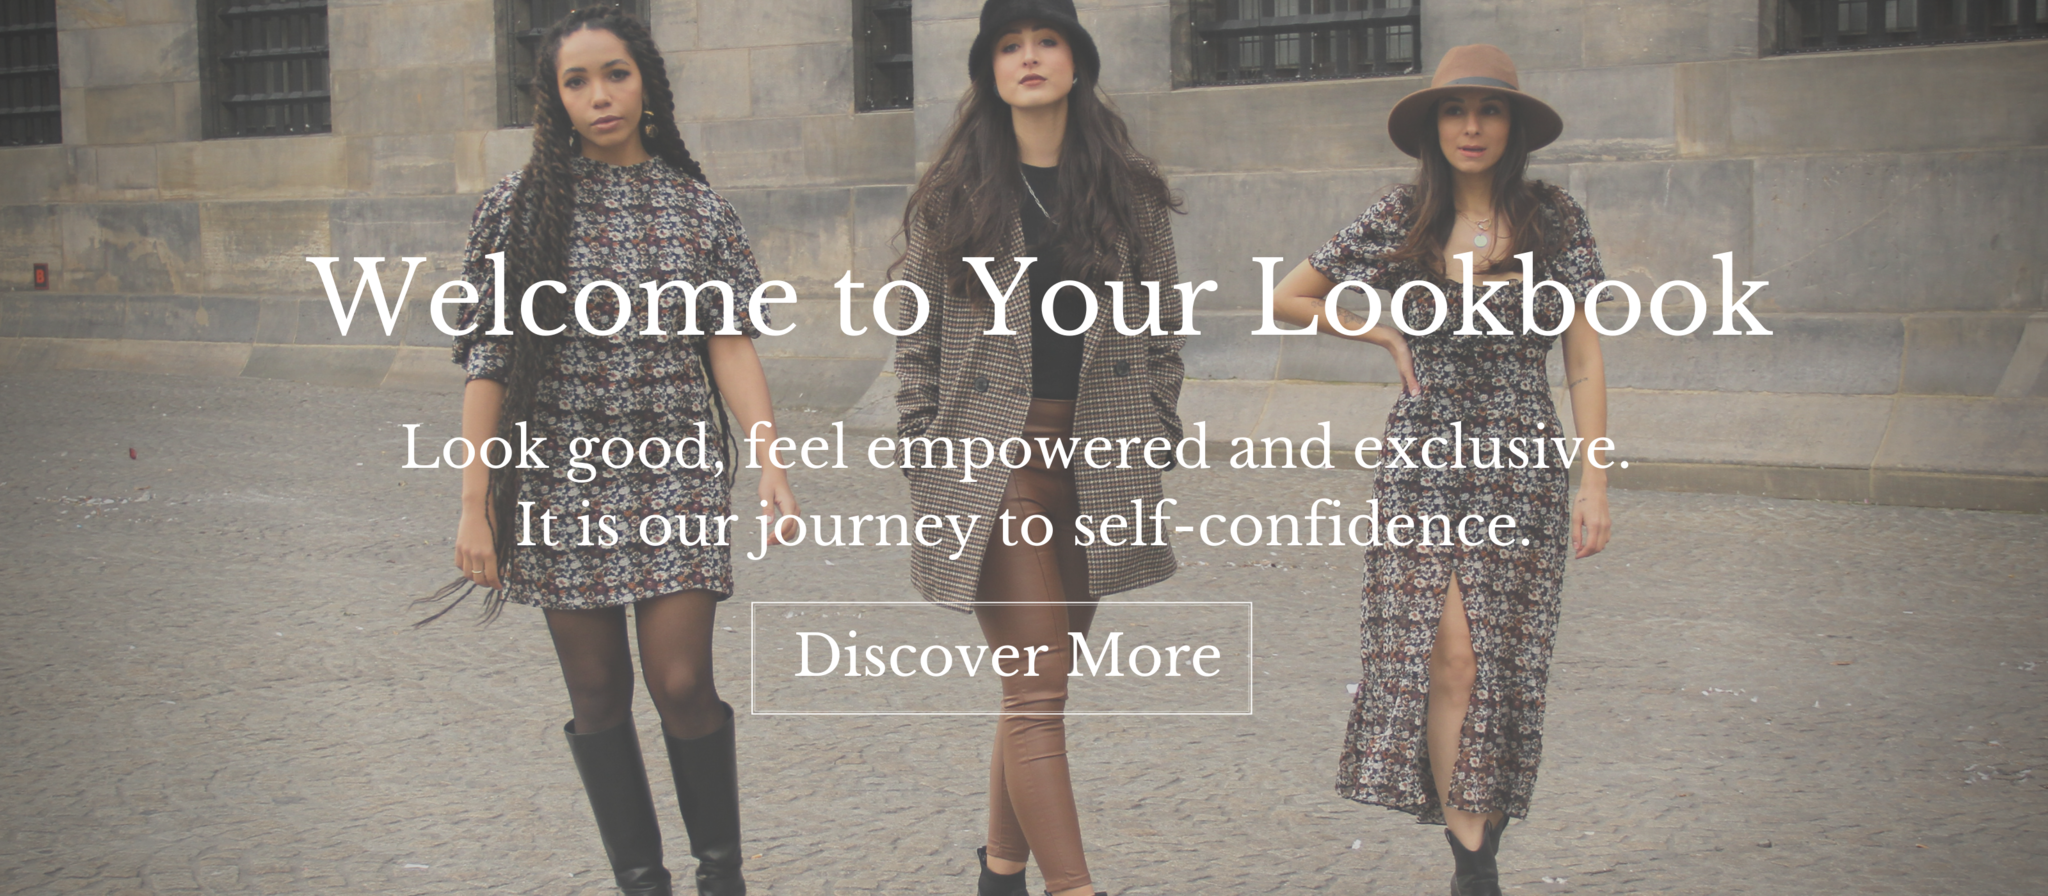 Look good, feel empowered and exclusive.  It is our journey to self-confidence.